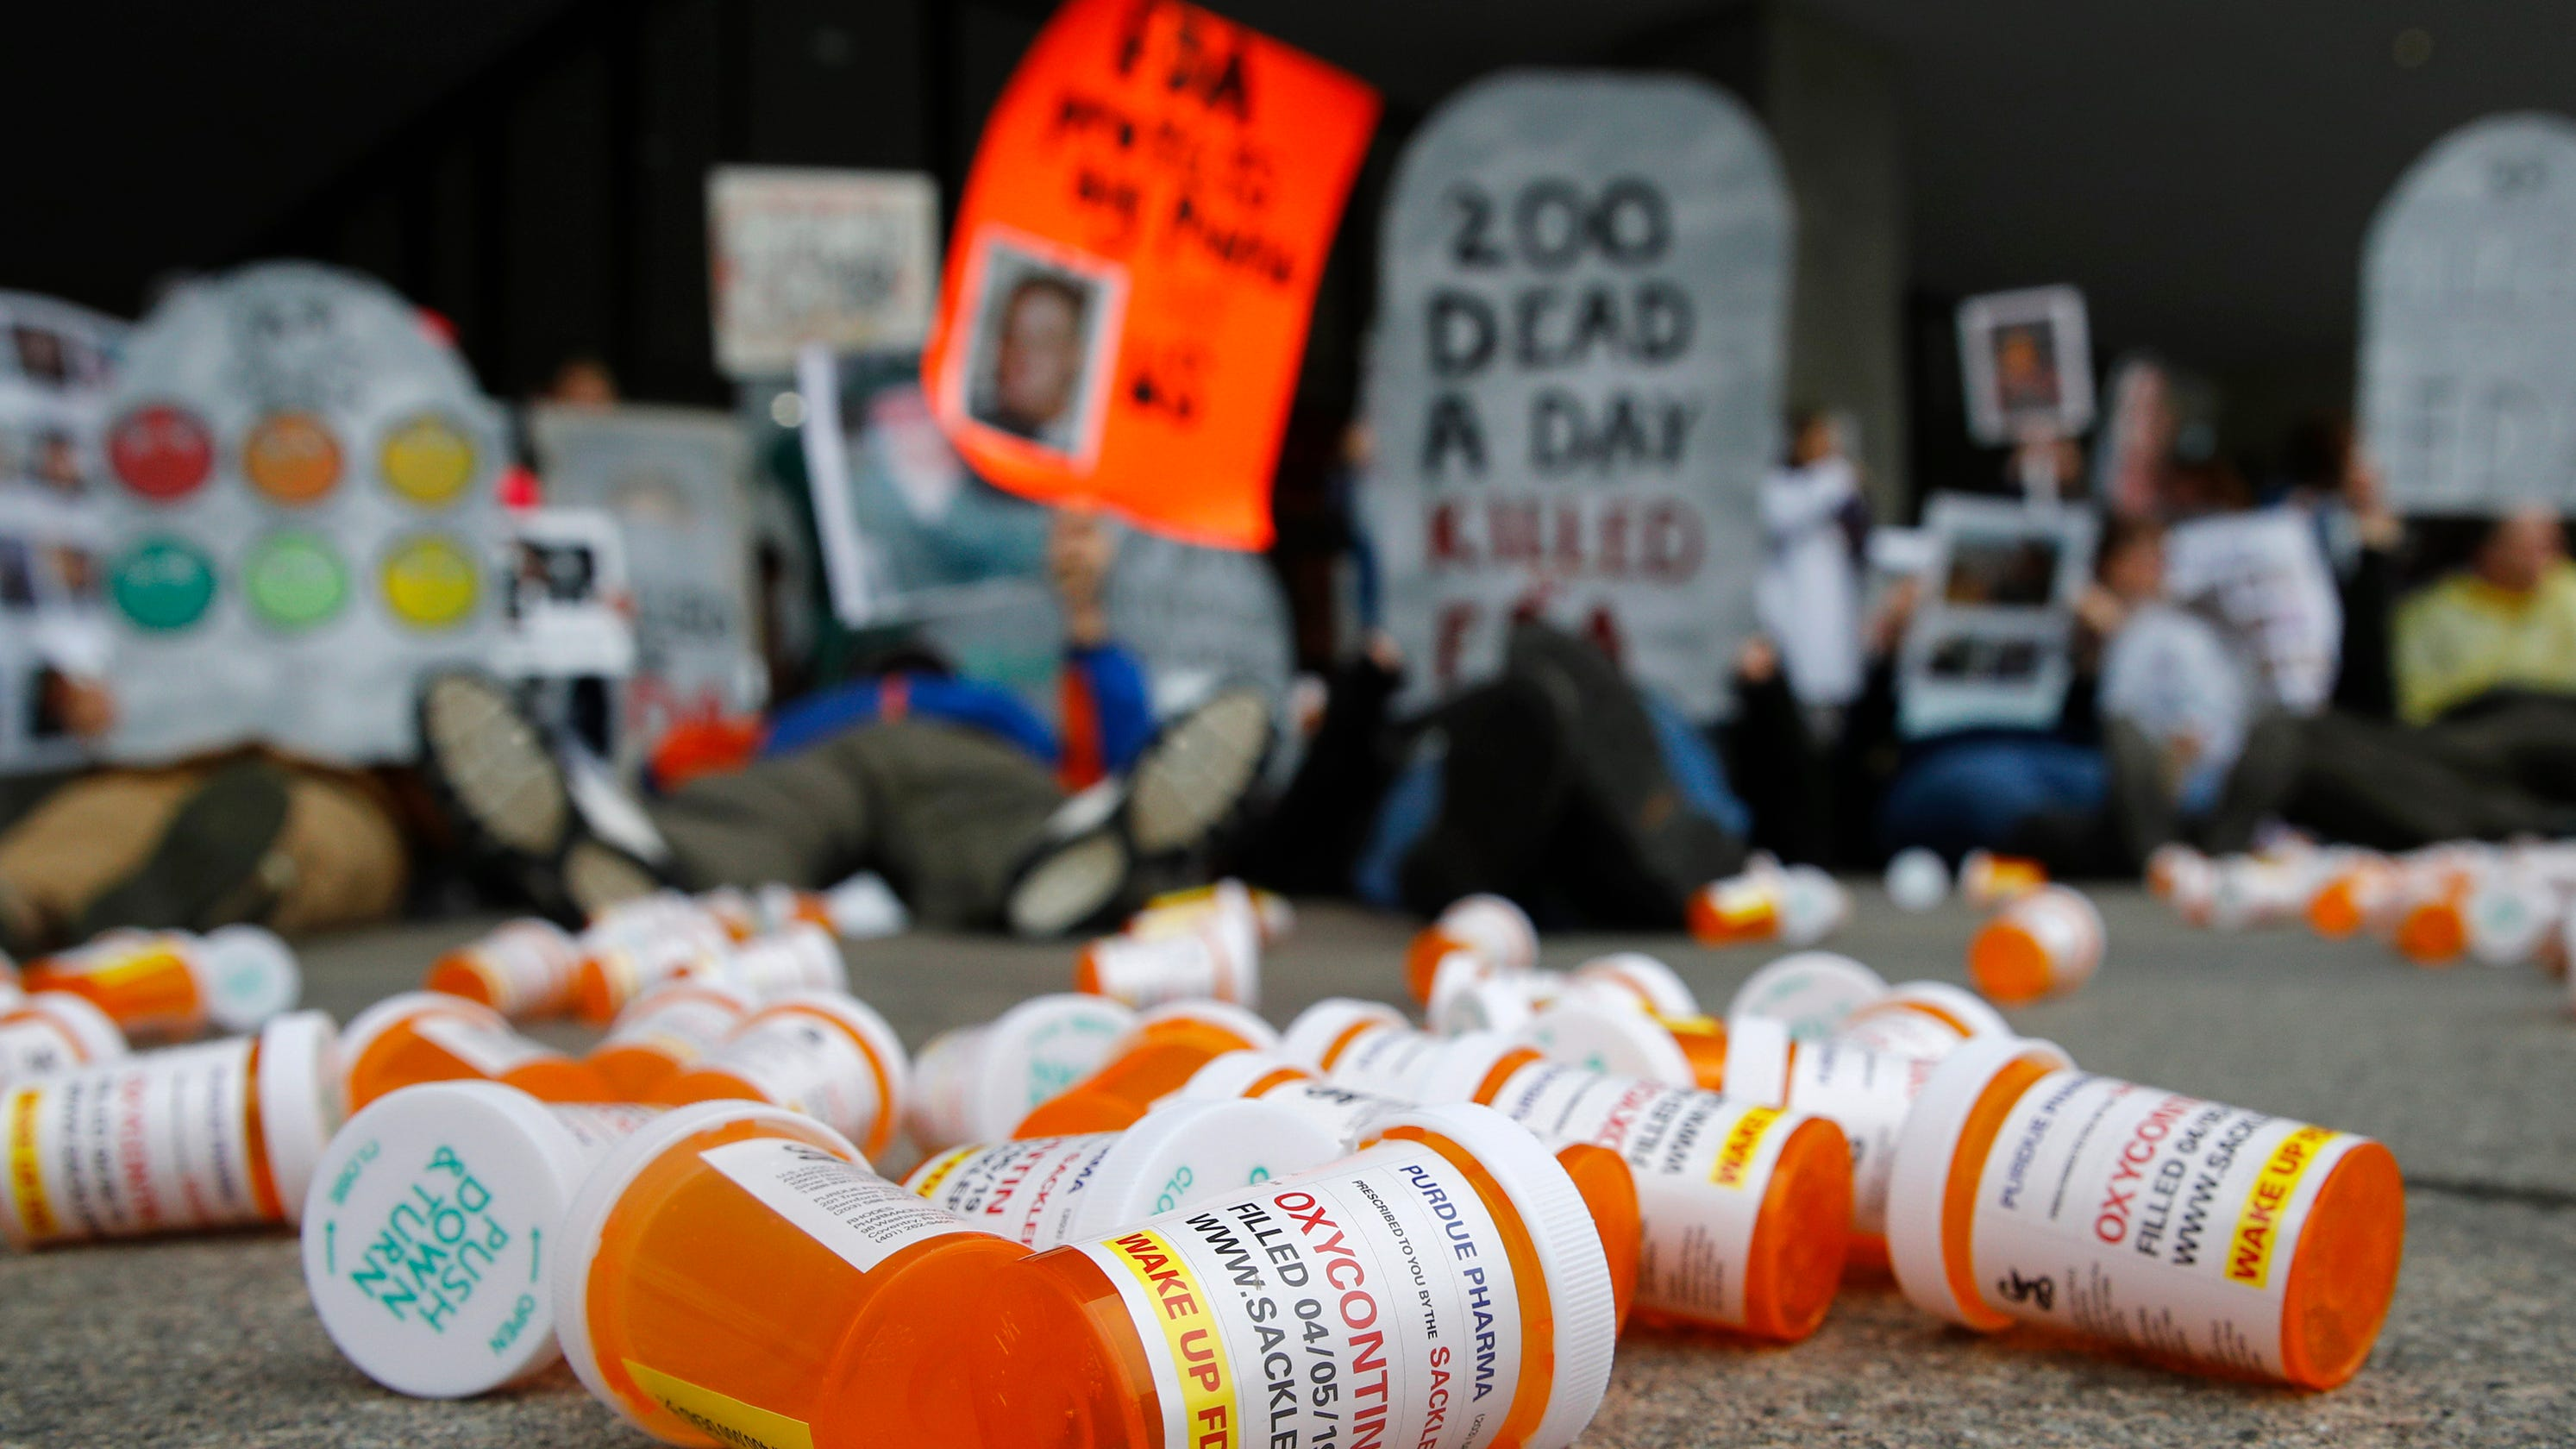 Even as opioid deaths grew, drugmakers and distributors made and sold pills 'like Doritos'